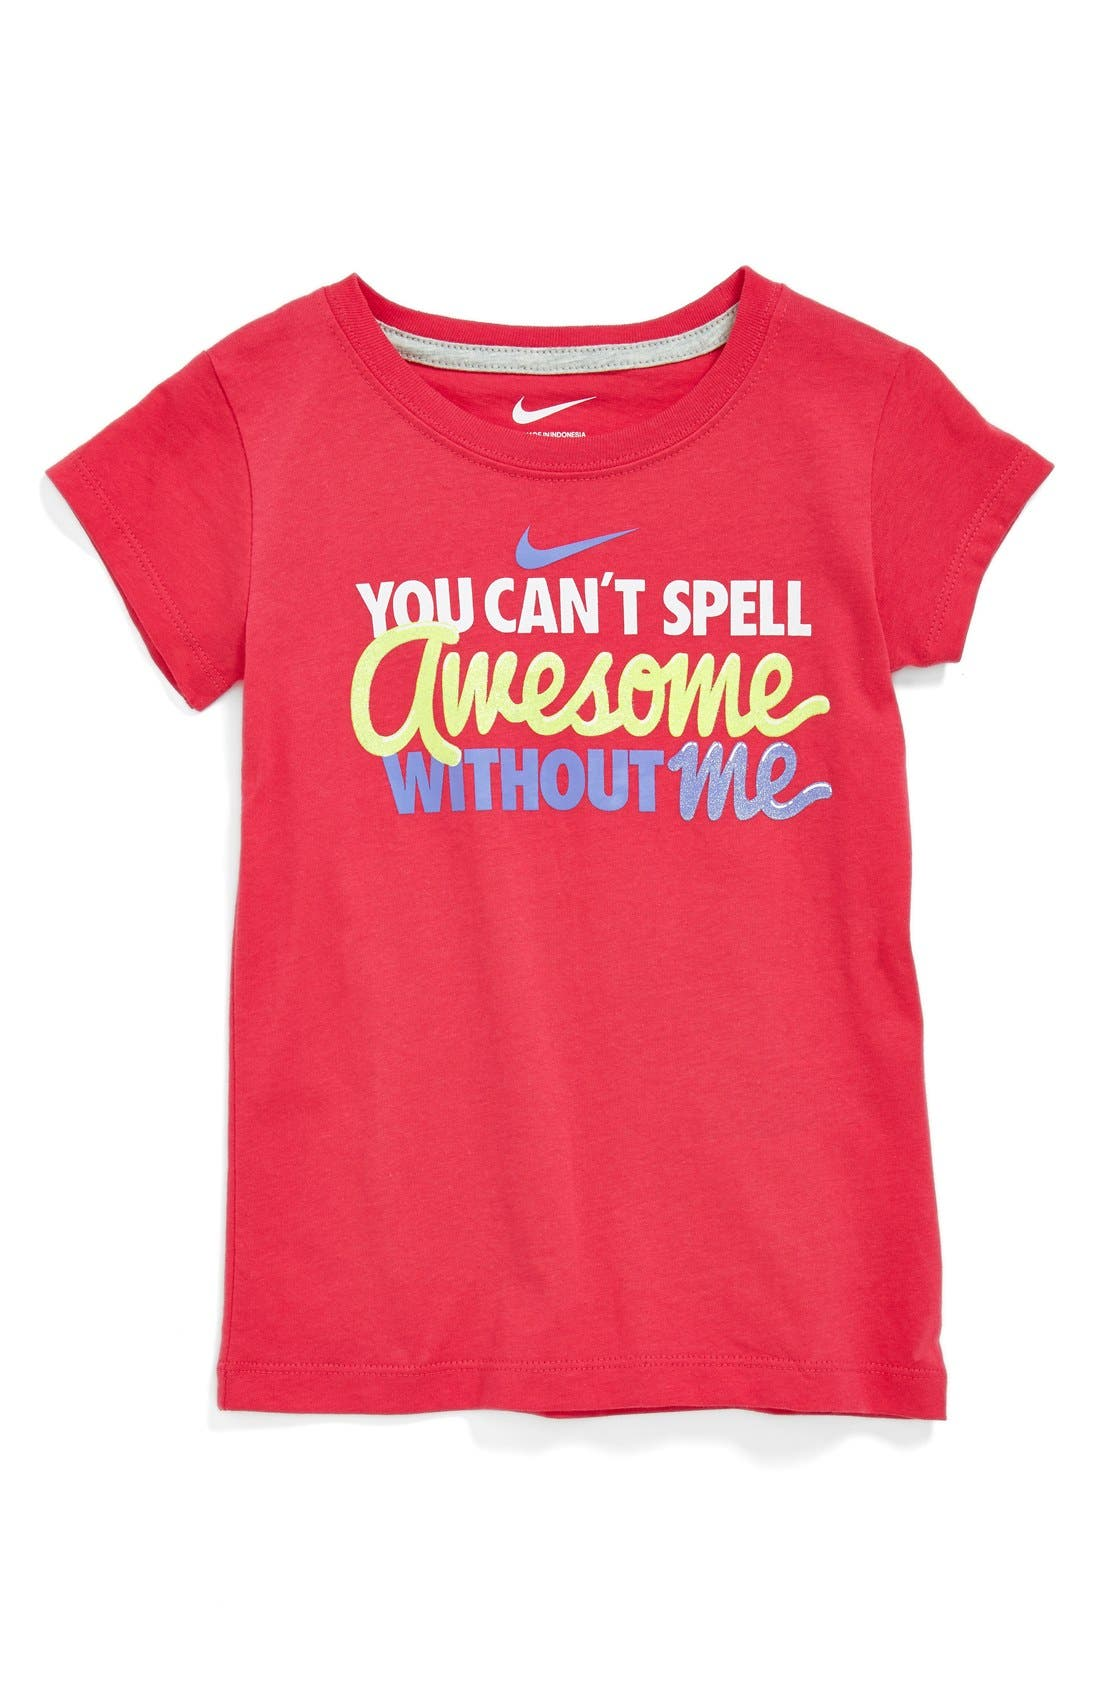 NIKE,                             'You Can't Spell Awesome Without Me' Tee,                             Main thumbnail 1, color,                             655